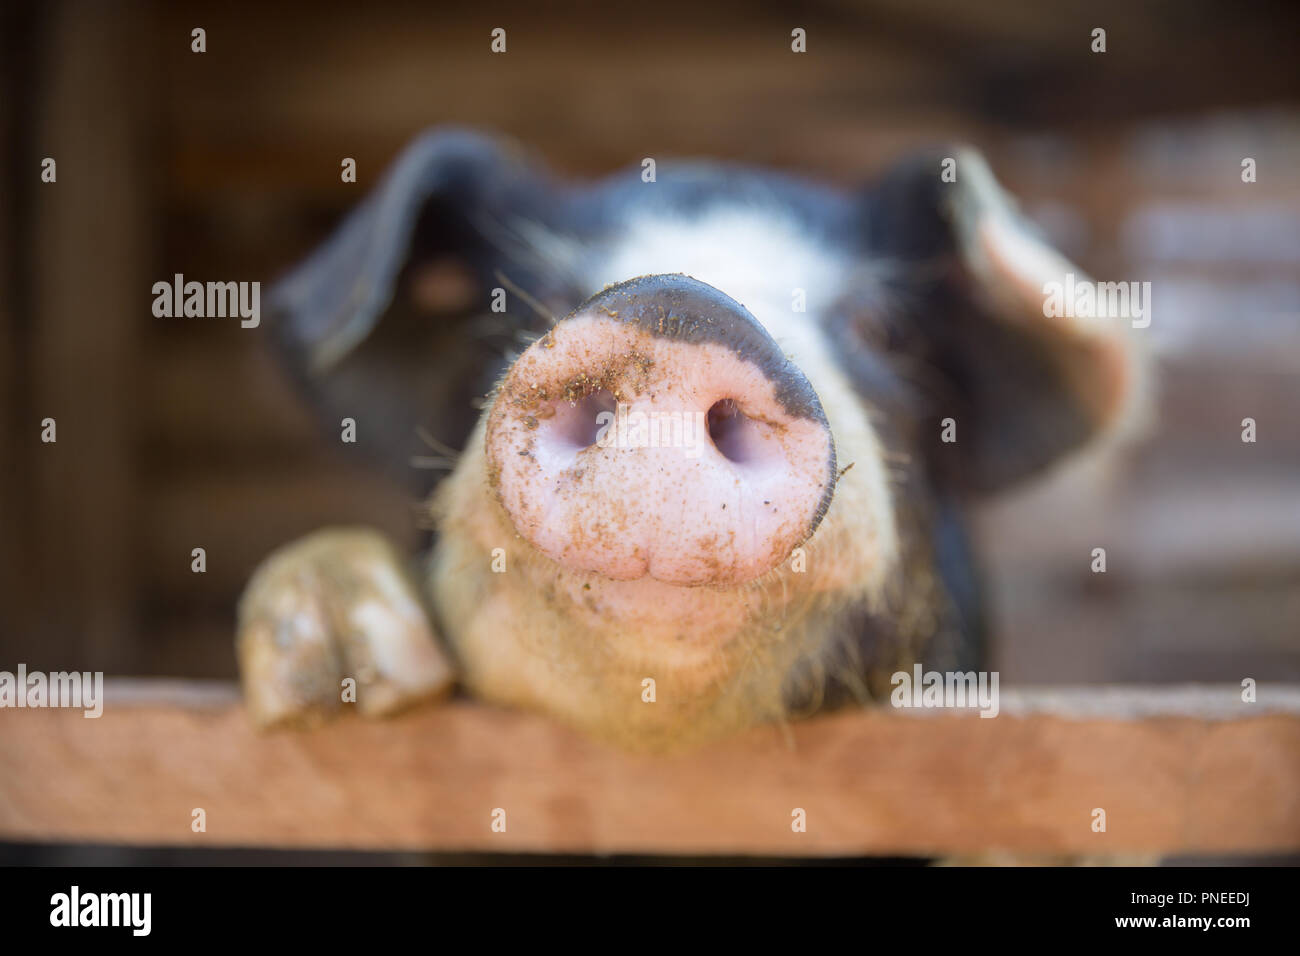 Pig nose in the pen. Focus is on nose. Shallow depth of field. - Stock Image